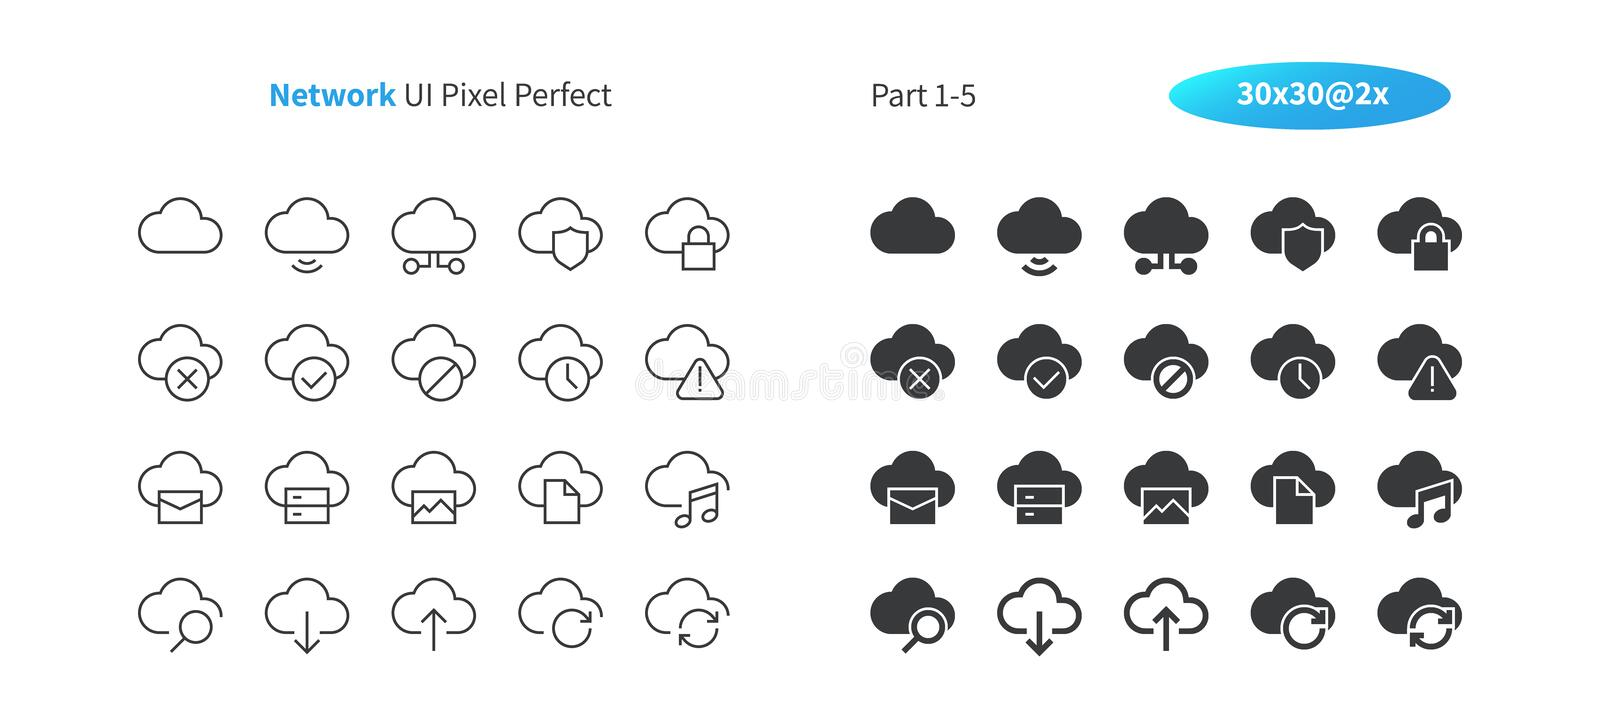 Network UI Pixel Perfect Well-crafted Vector Thin Line And Solid Icons 30 2x Grid for Web Graphics and Apps. stock illustration